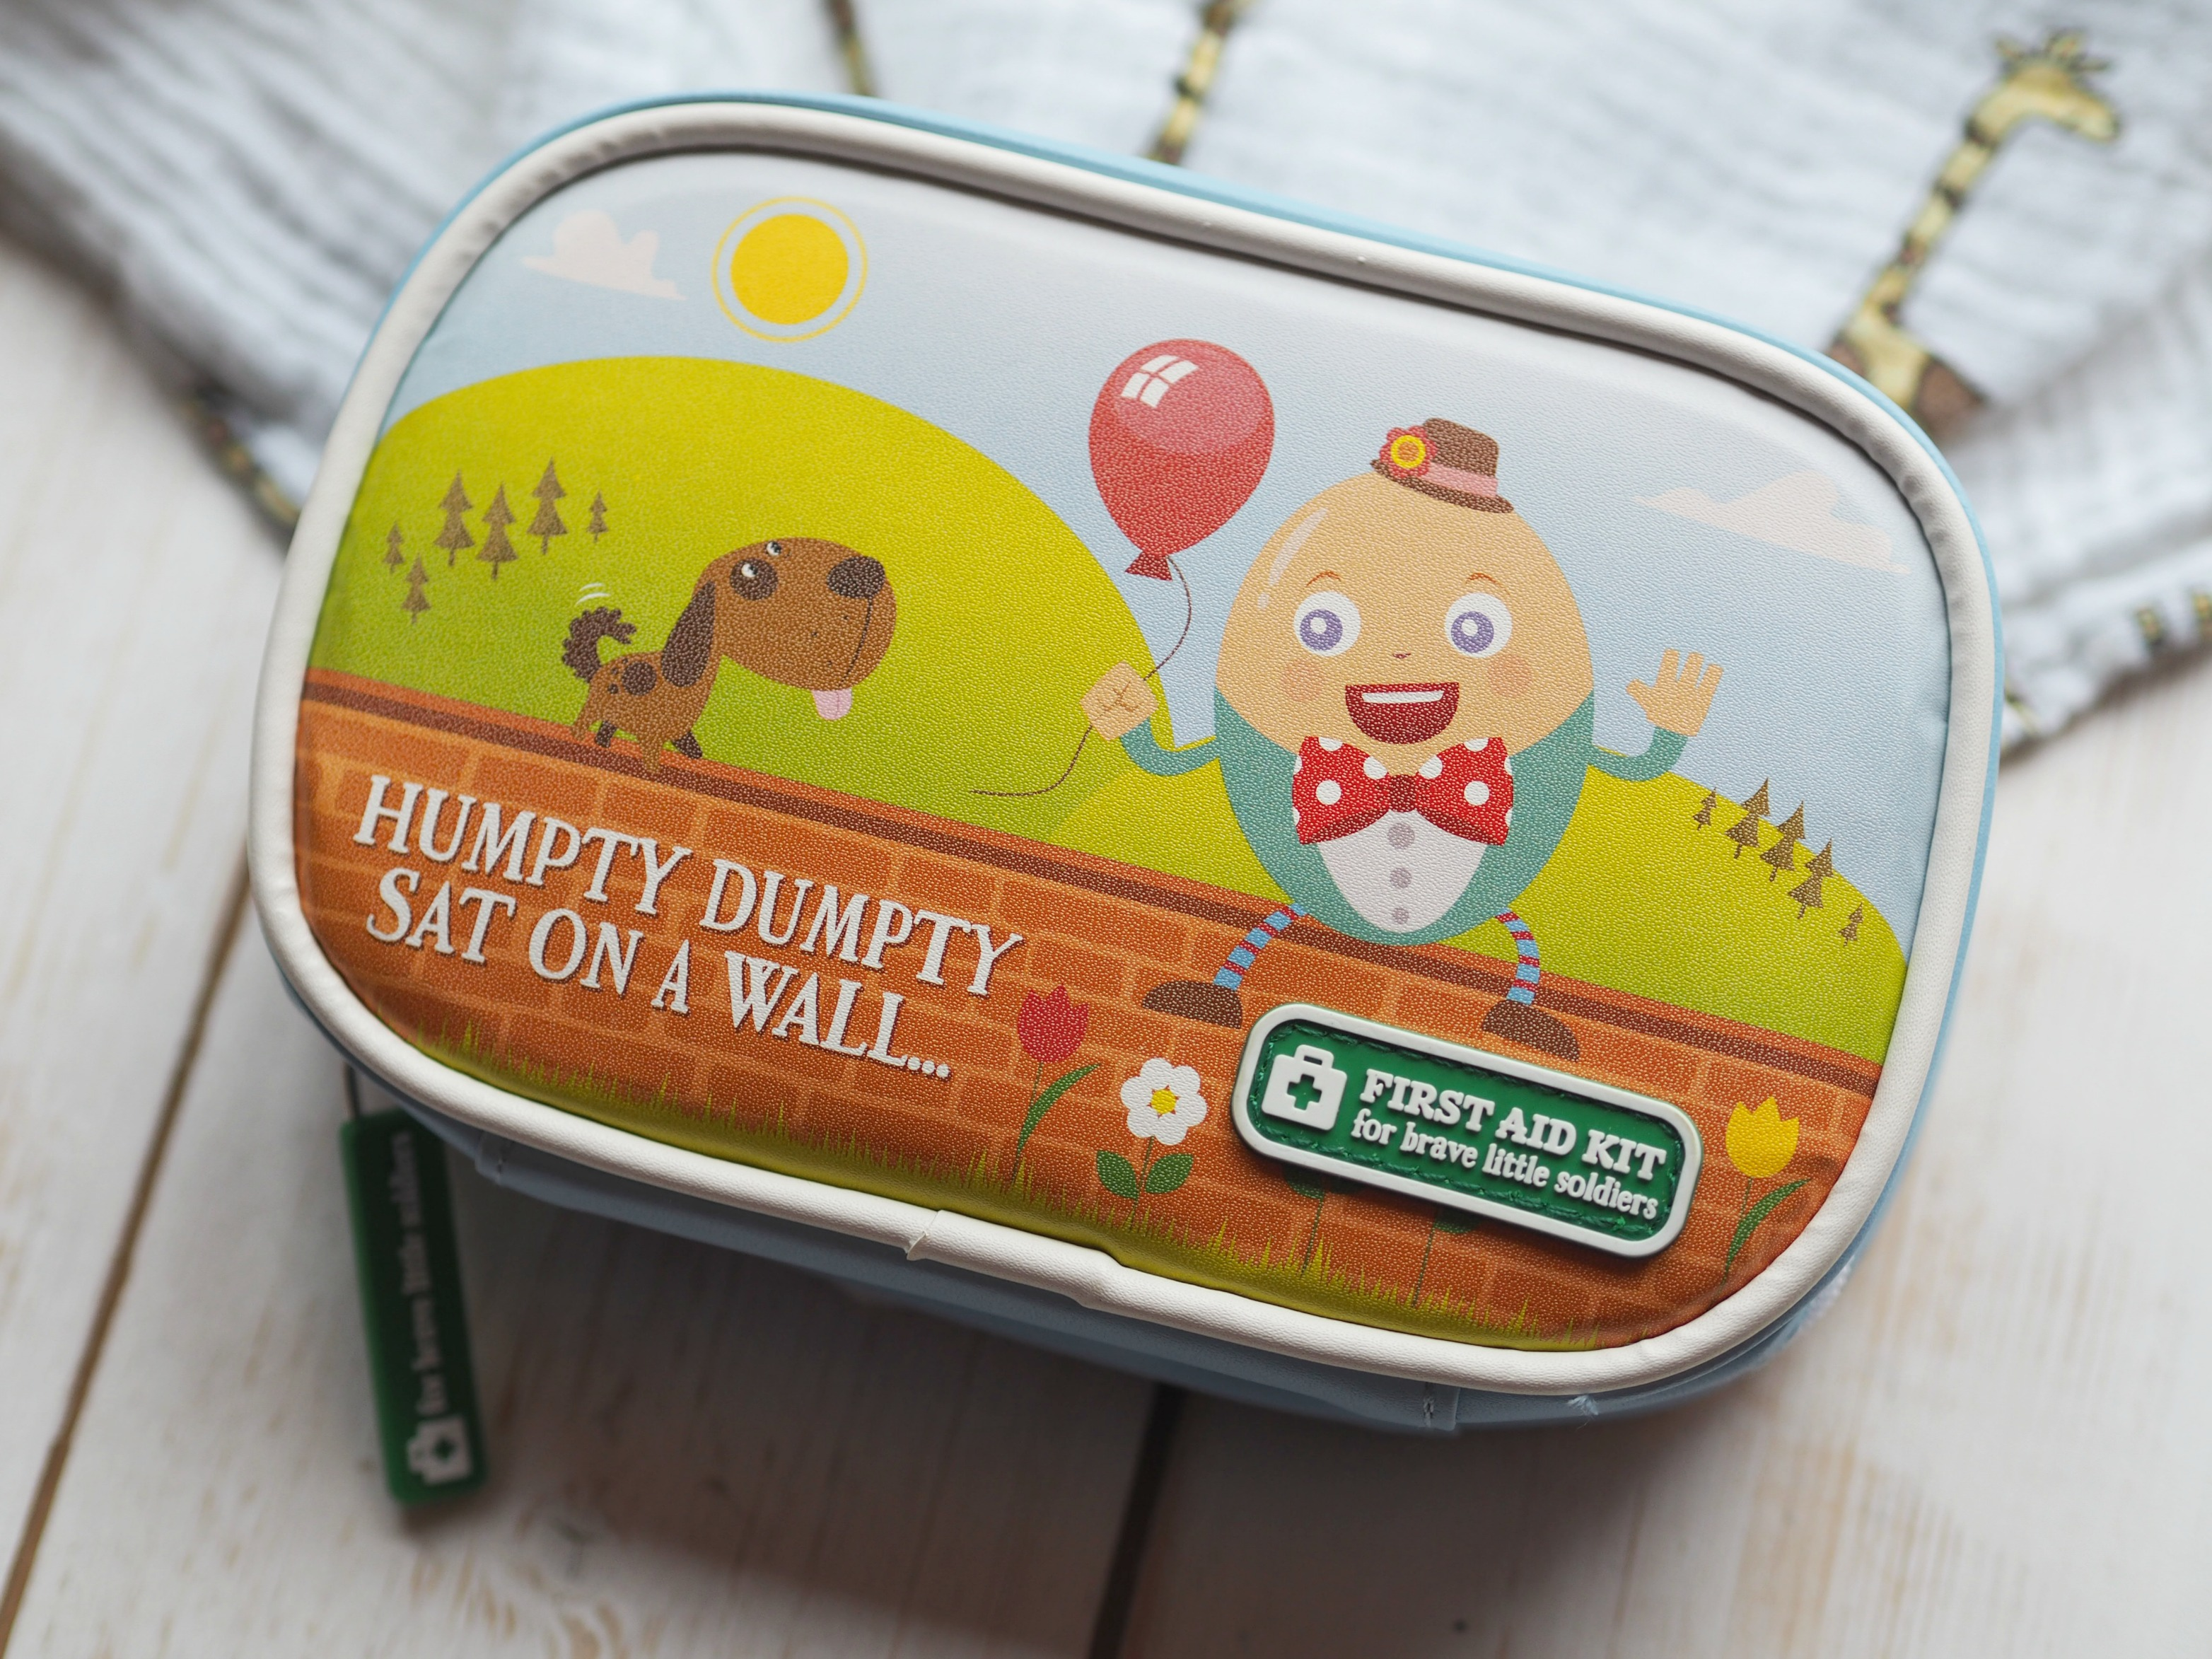 Yellodoor Baby First Aid Kit - Review and Giveaway - humpty dumpty set